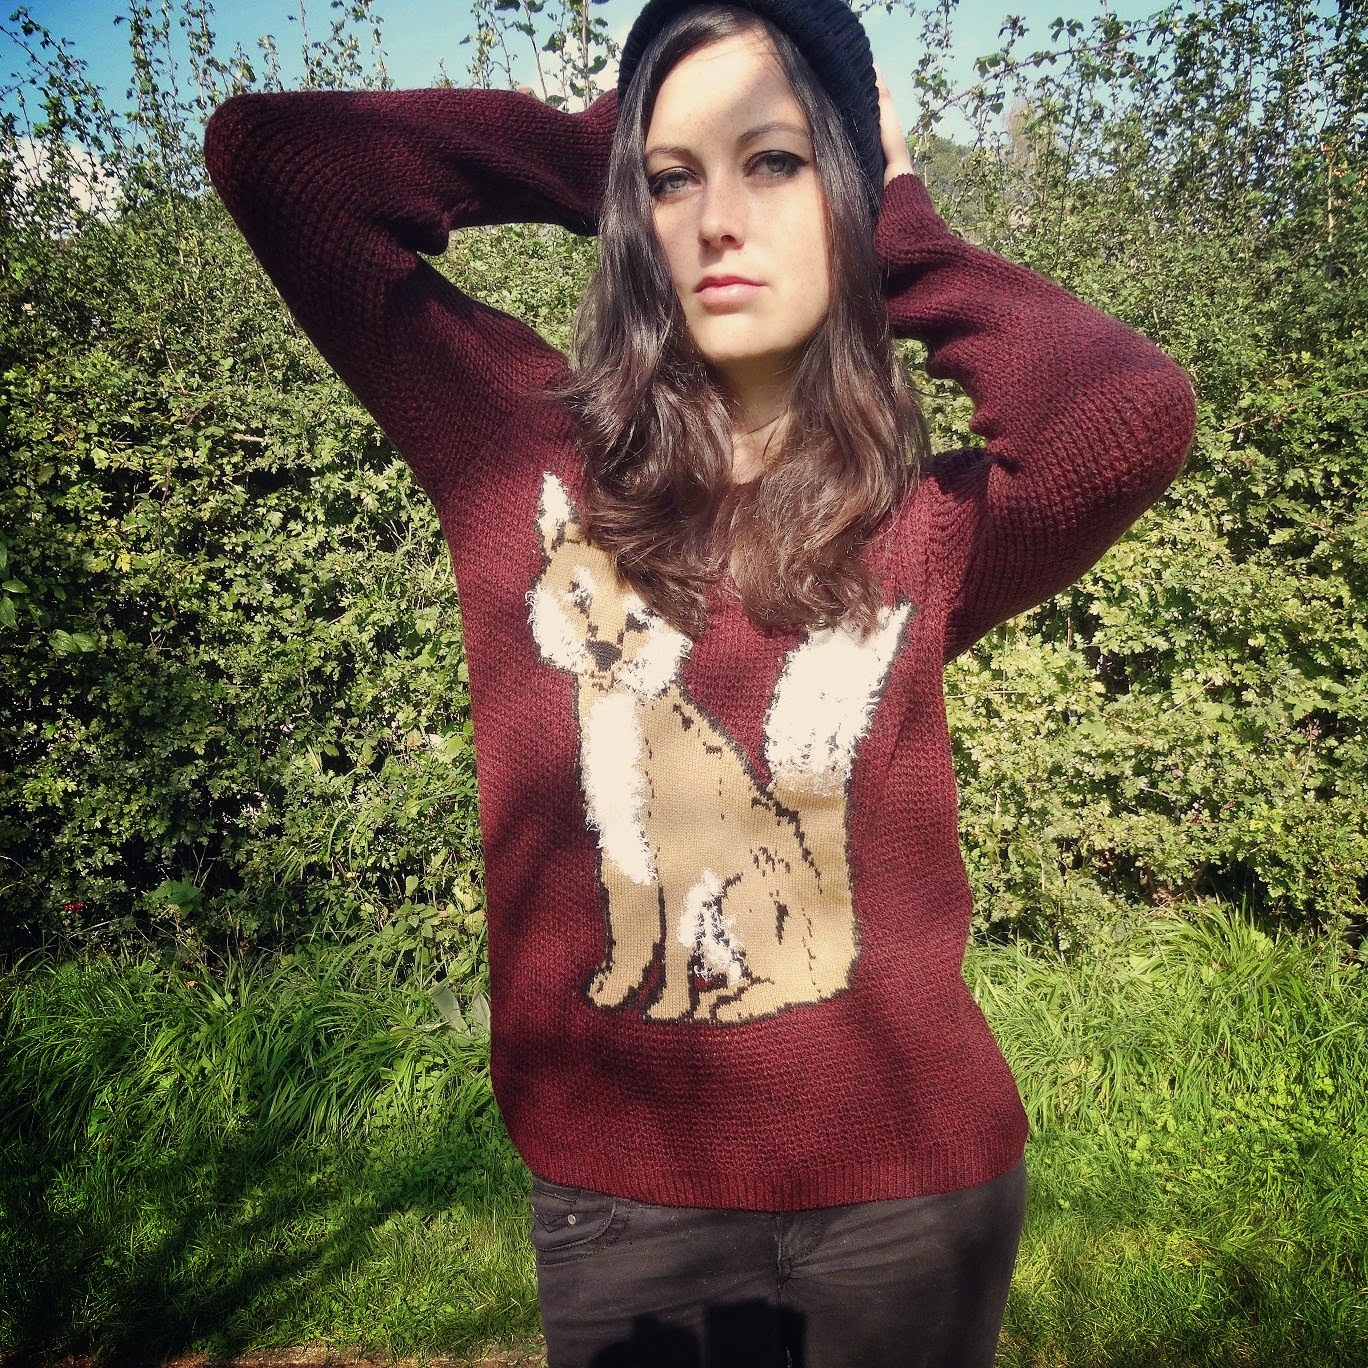 ASDA Fox Jumper autumn